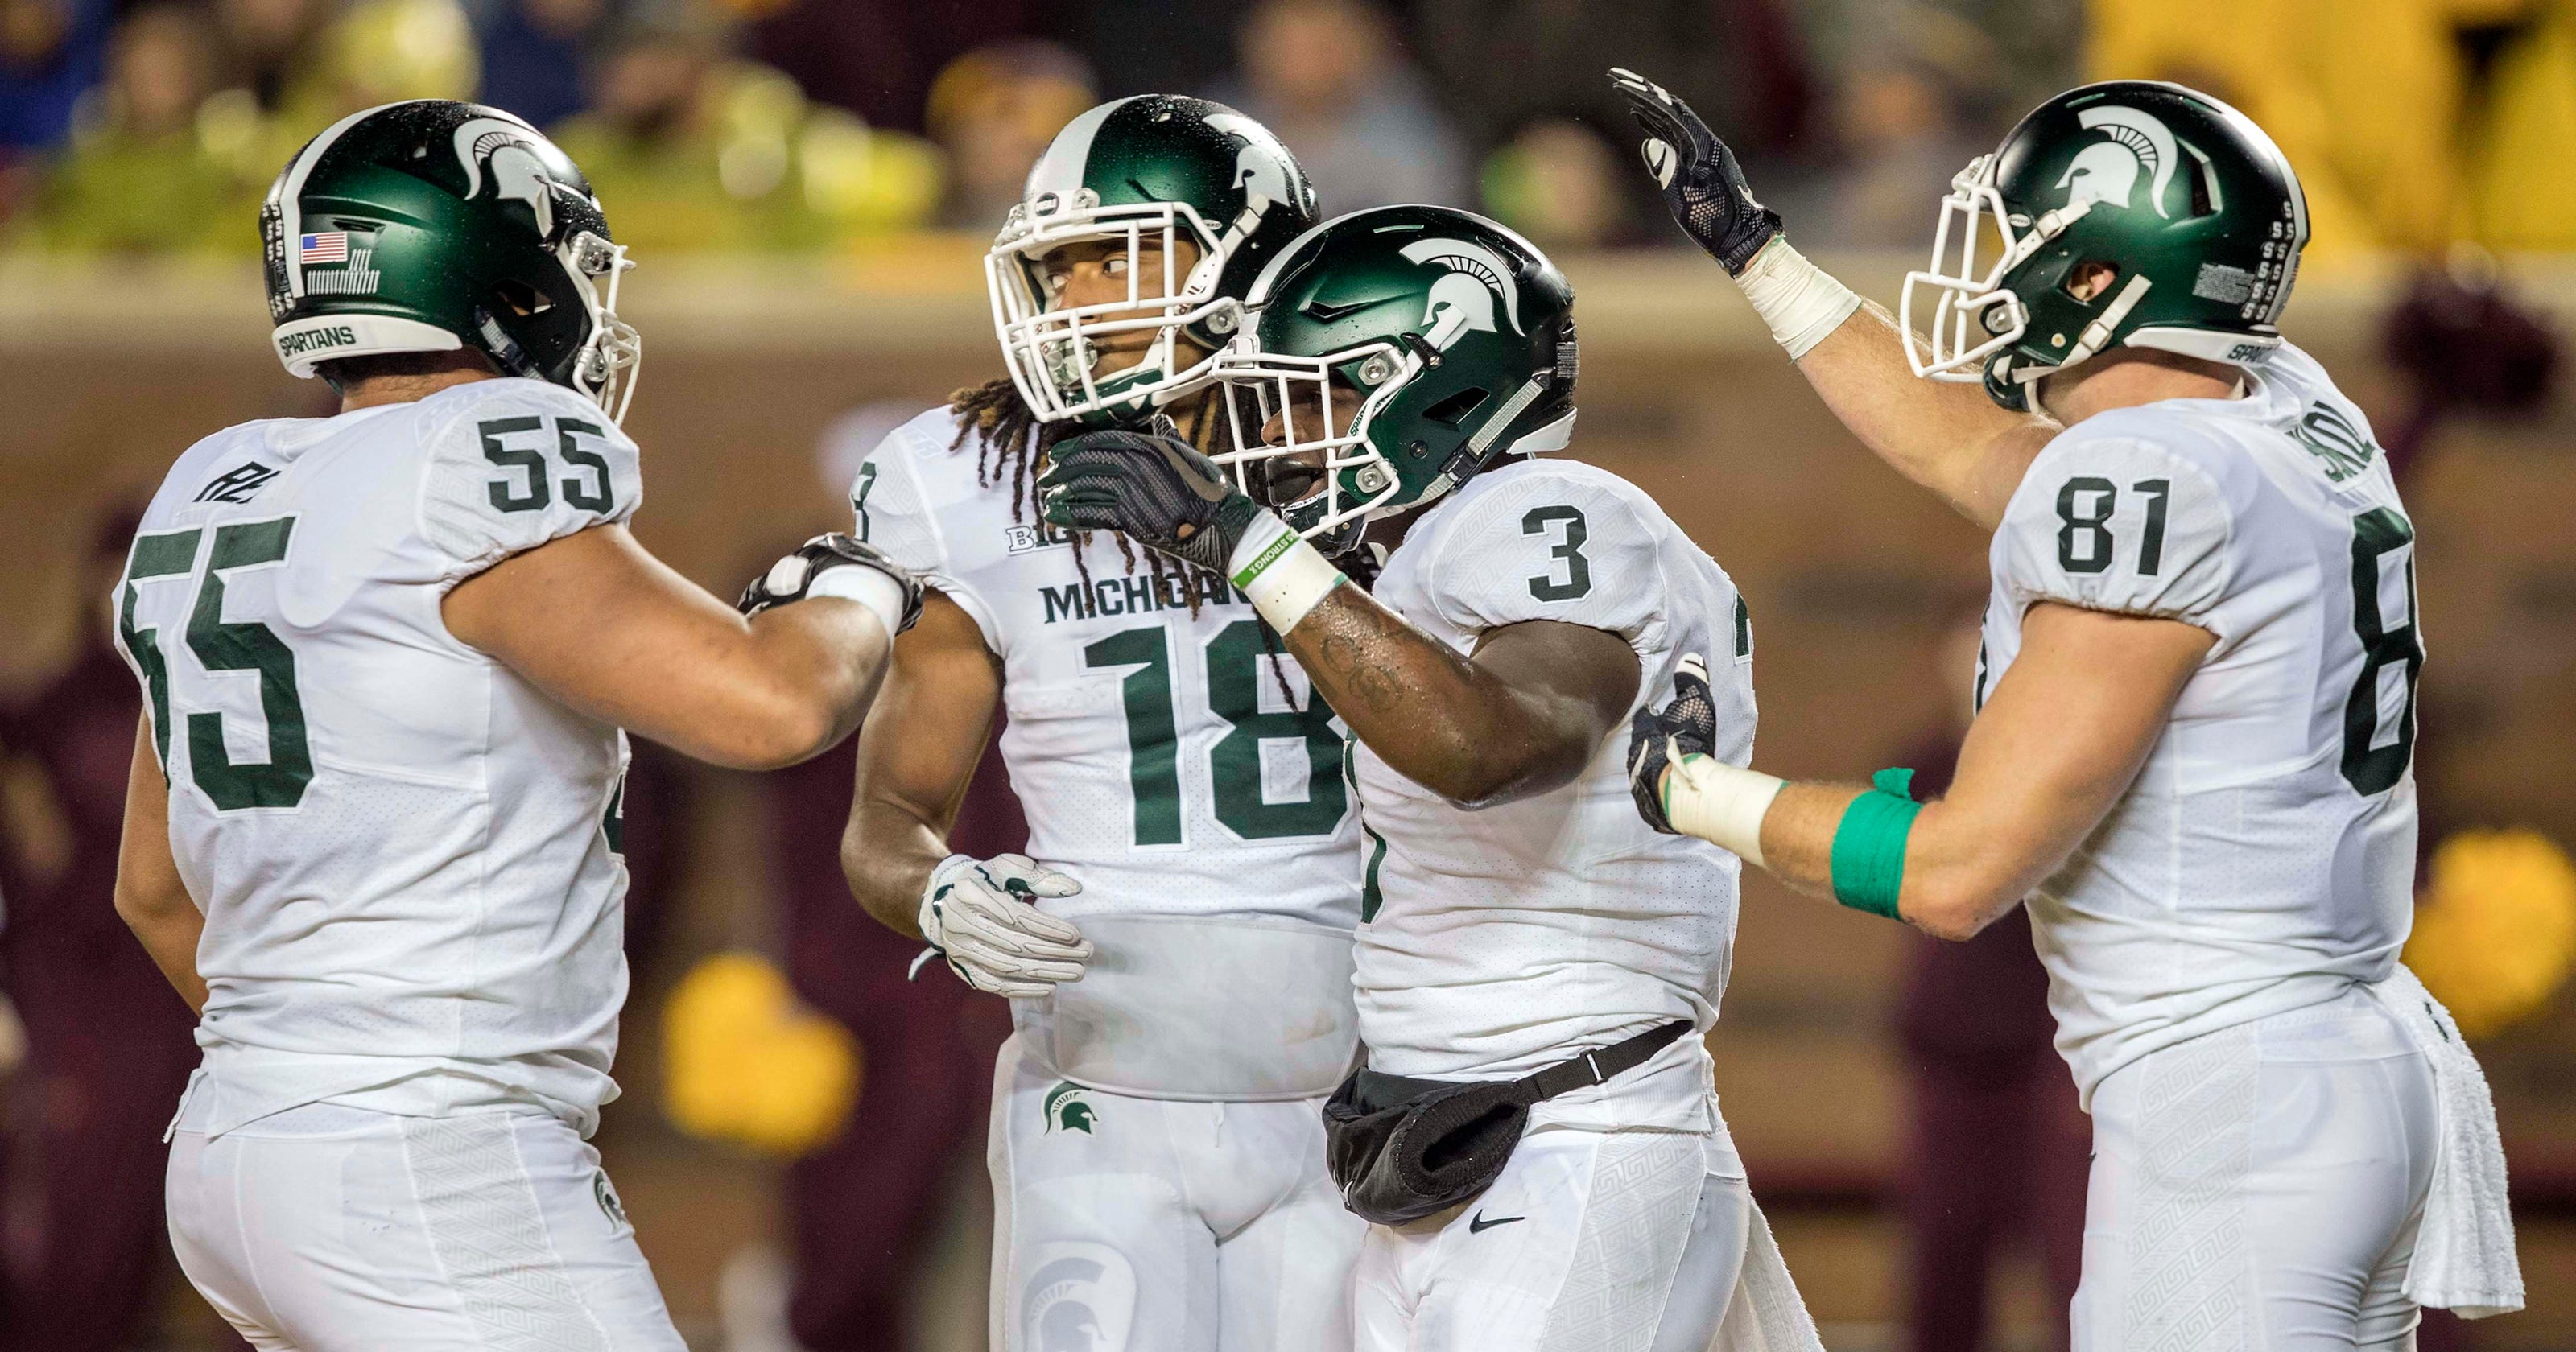 michigan football state nfl prospects draft spartans many